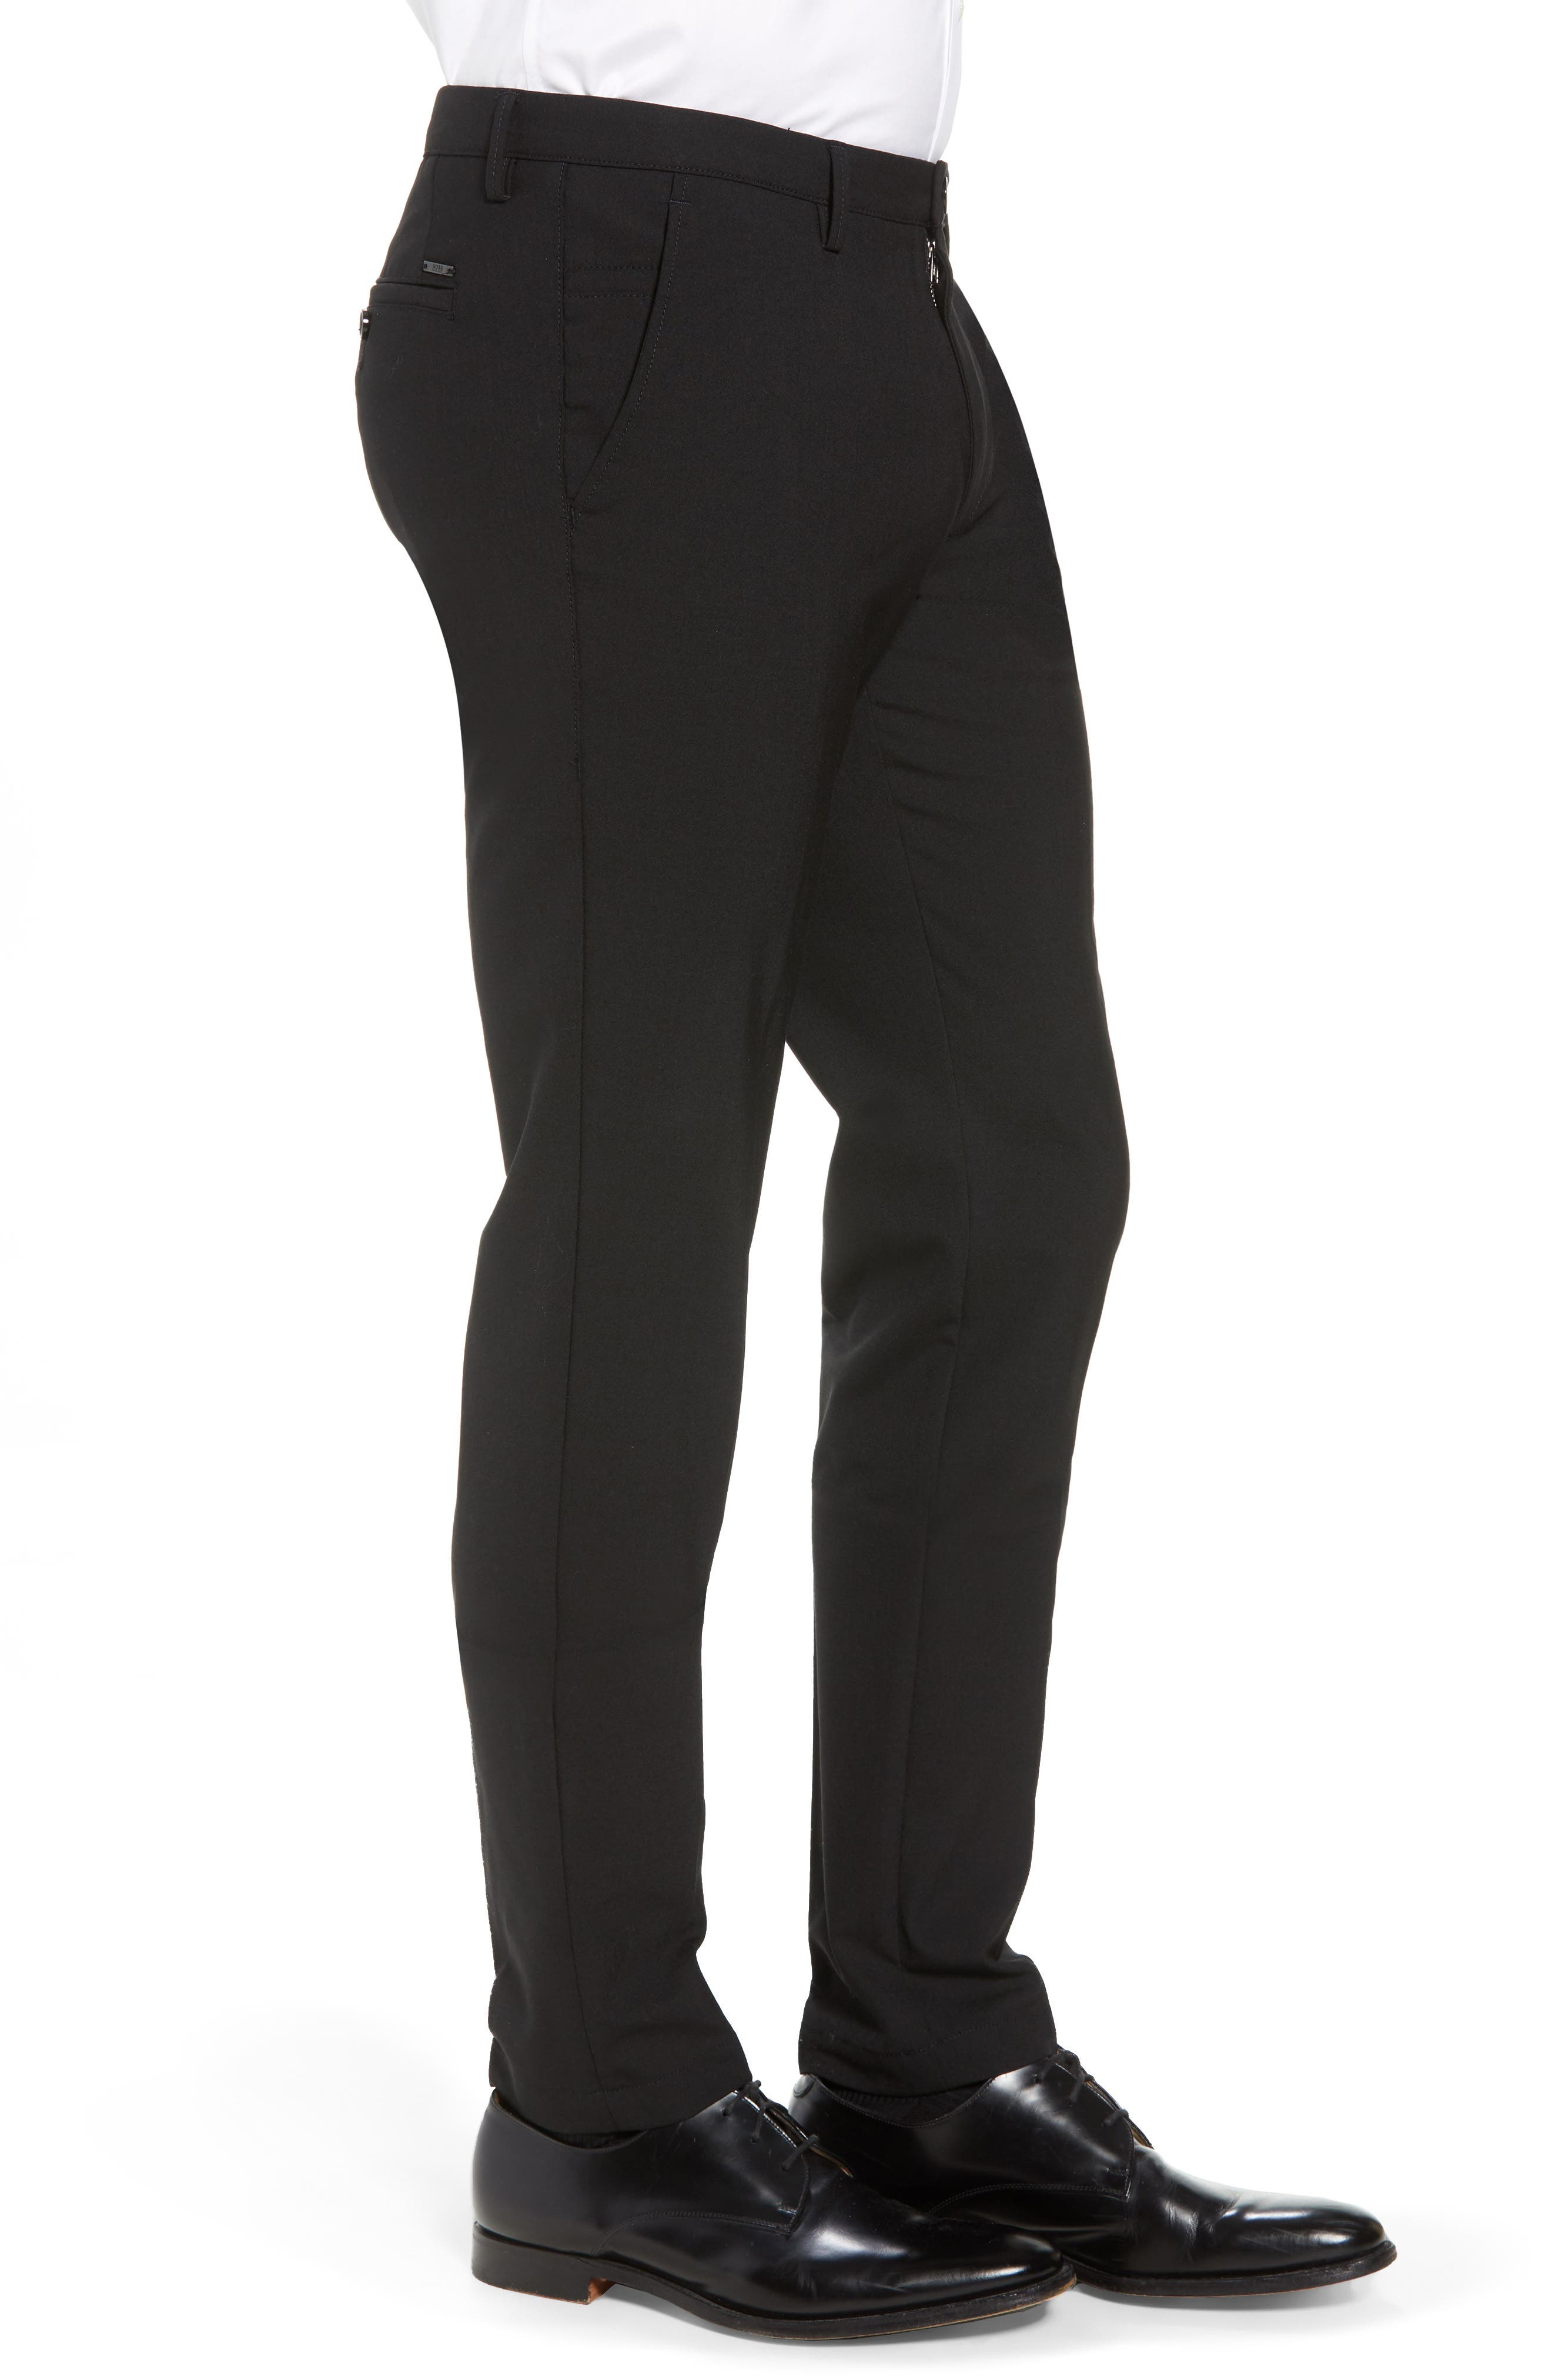 Kaito Slim Fit Trousers,                             Alternate thumbnail 3, color,                             BLACK